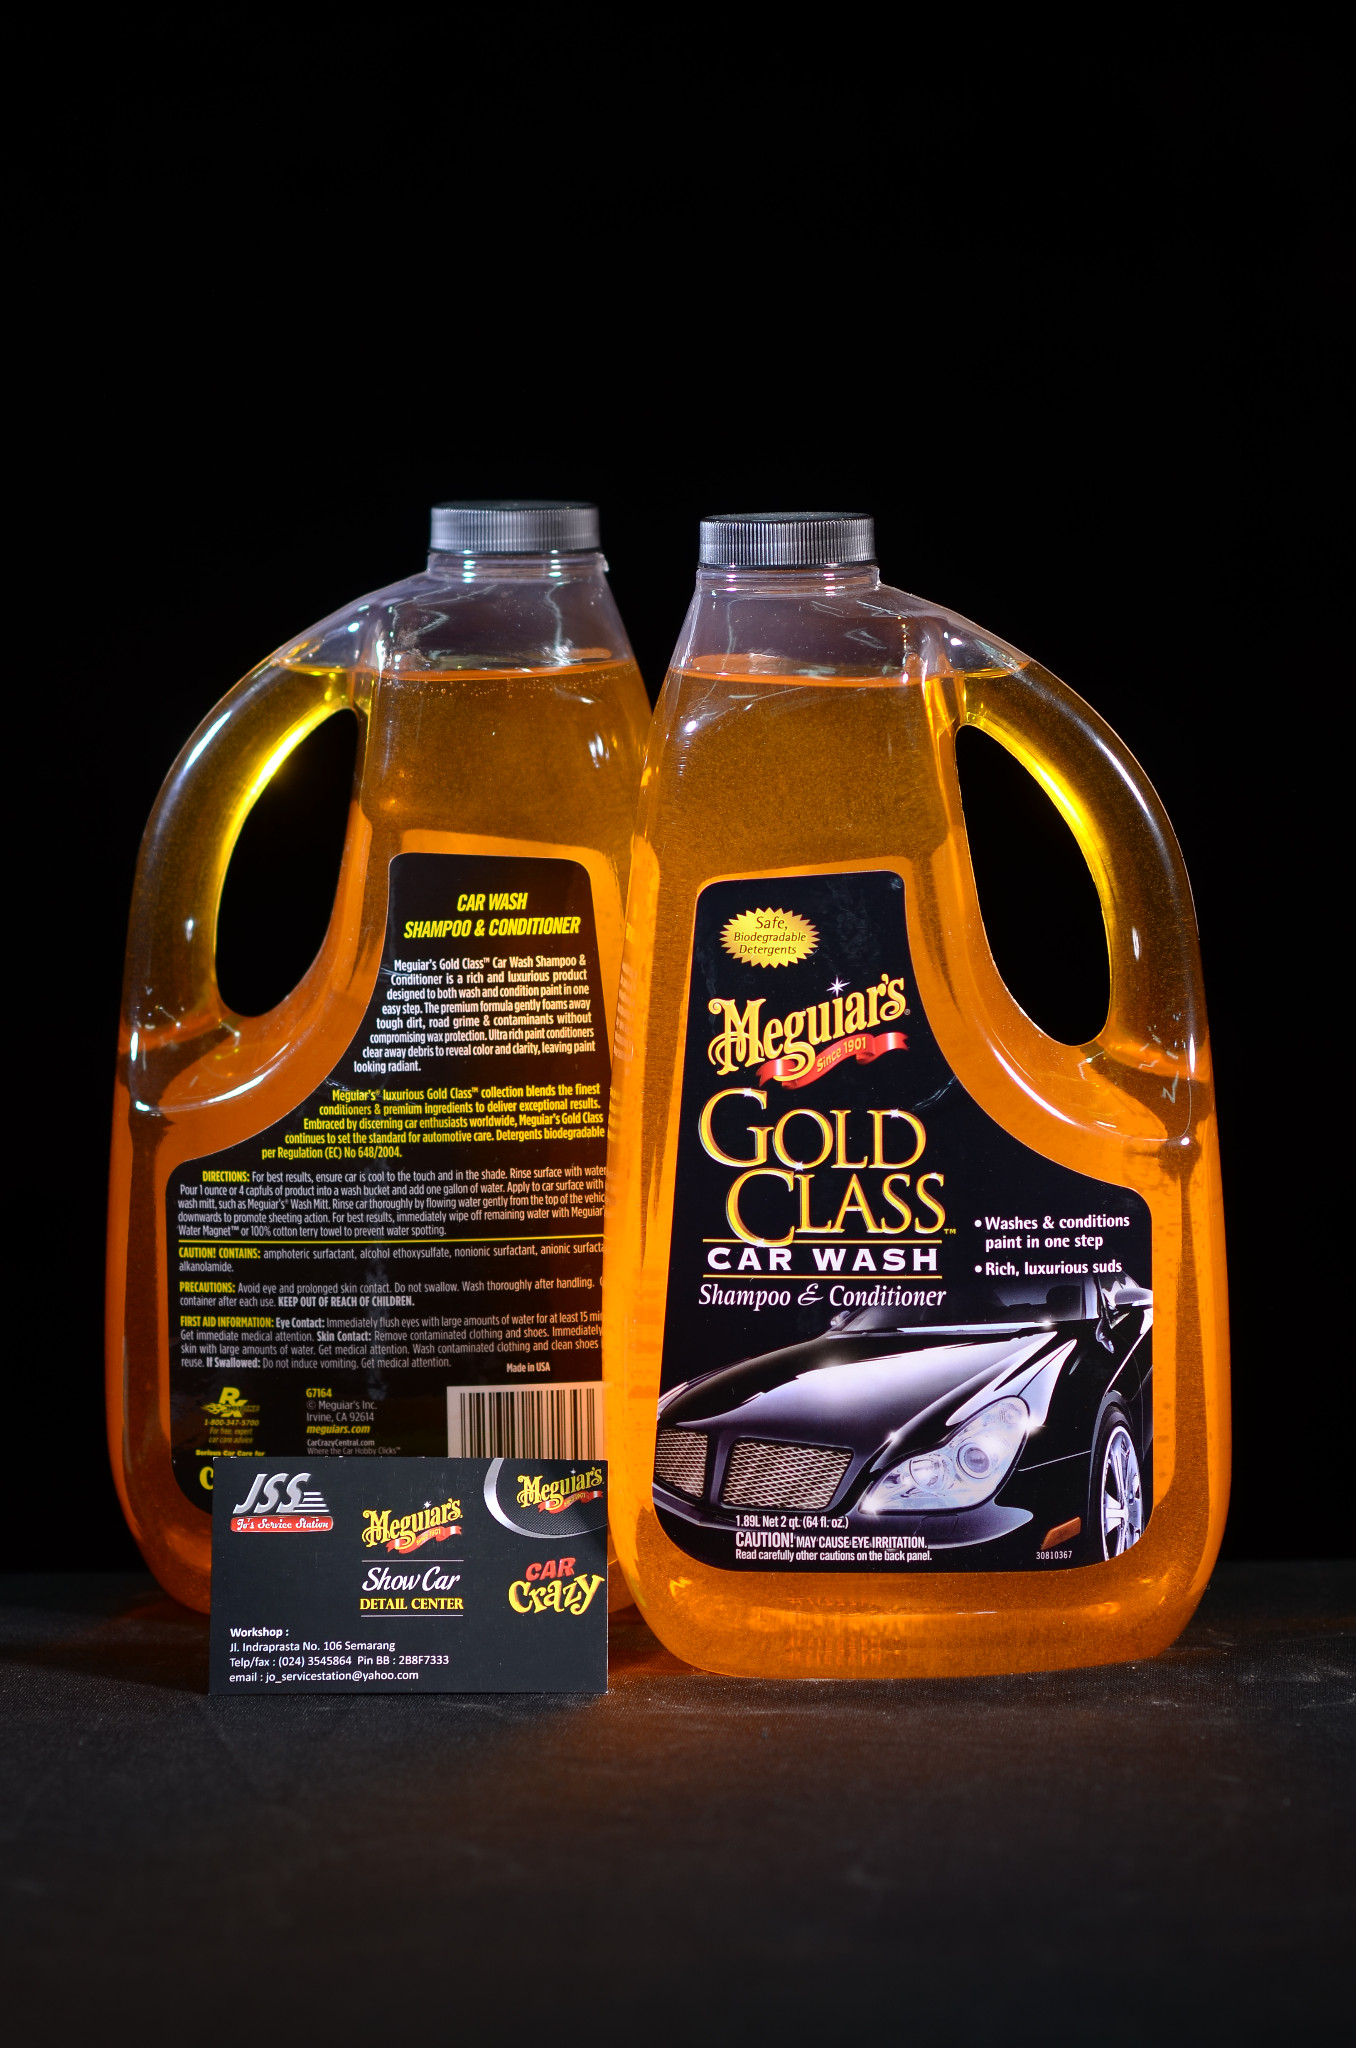 Harga Meguiars Gold Class Carnauba Shampoo & Conditioner